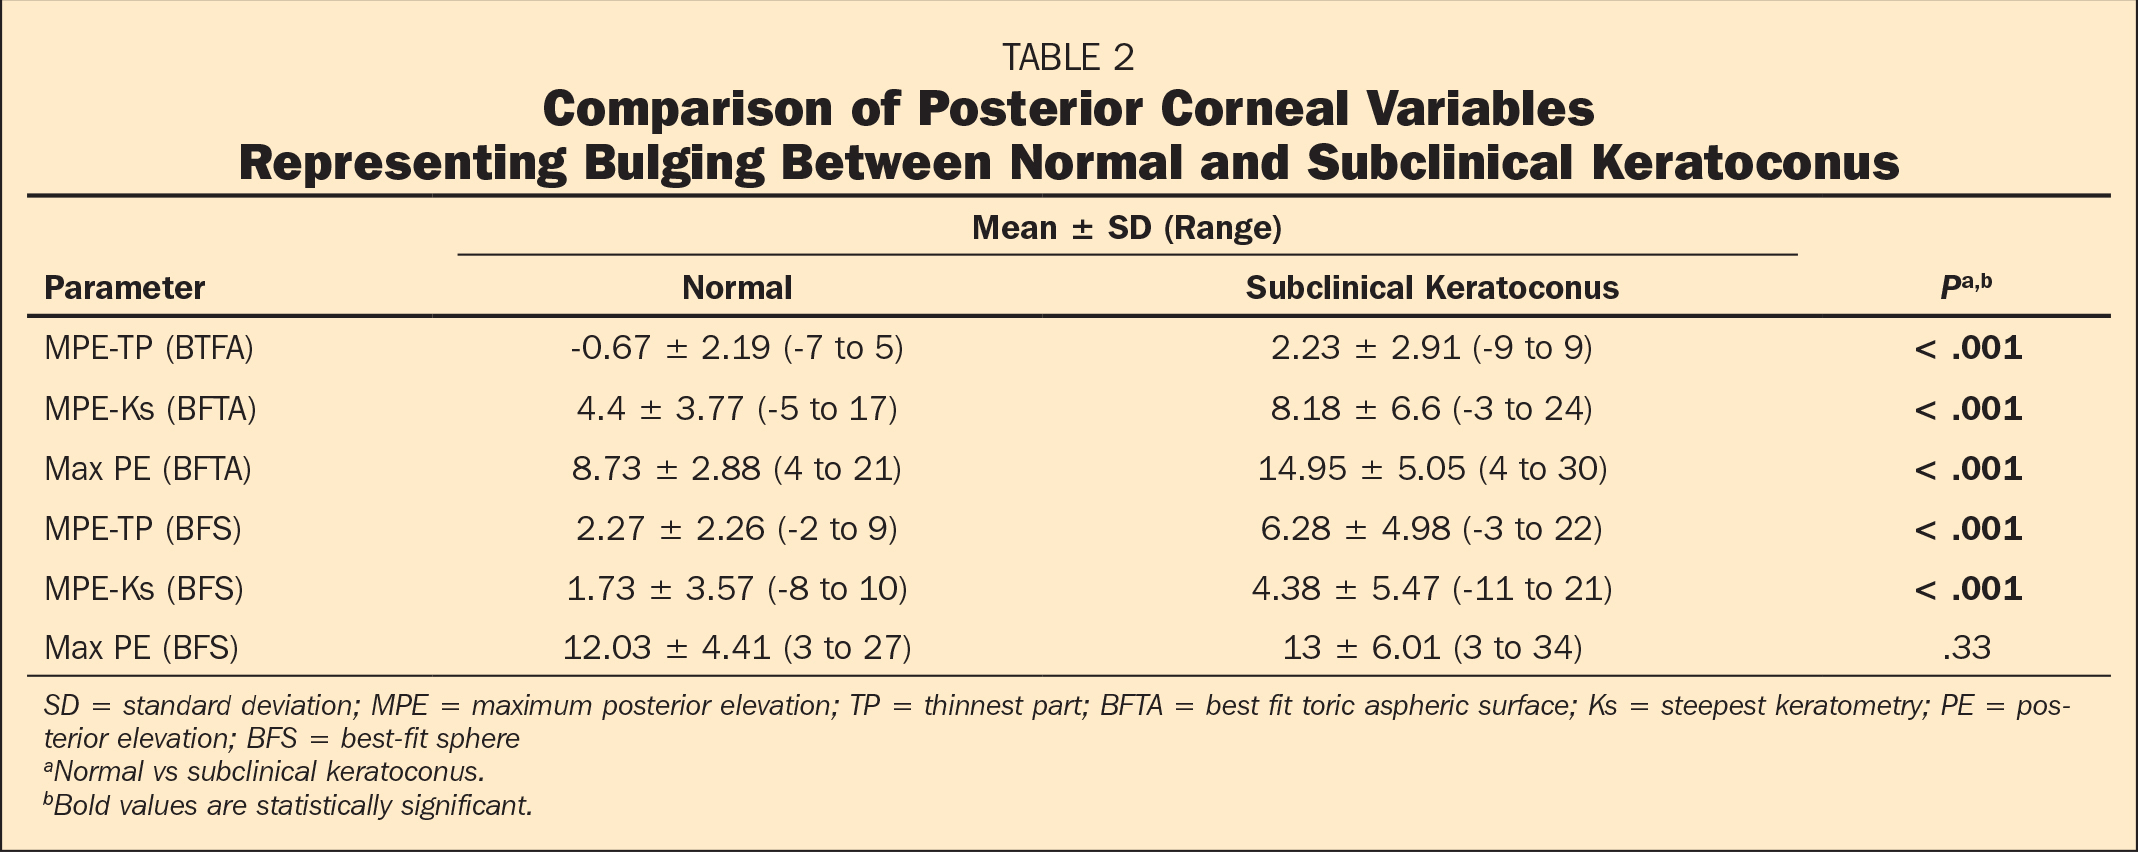 Comparison of Posterior Corneal Variables Representing Bulging Between Normal and Subclinical Keratoconus